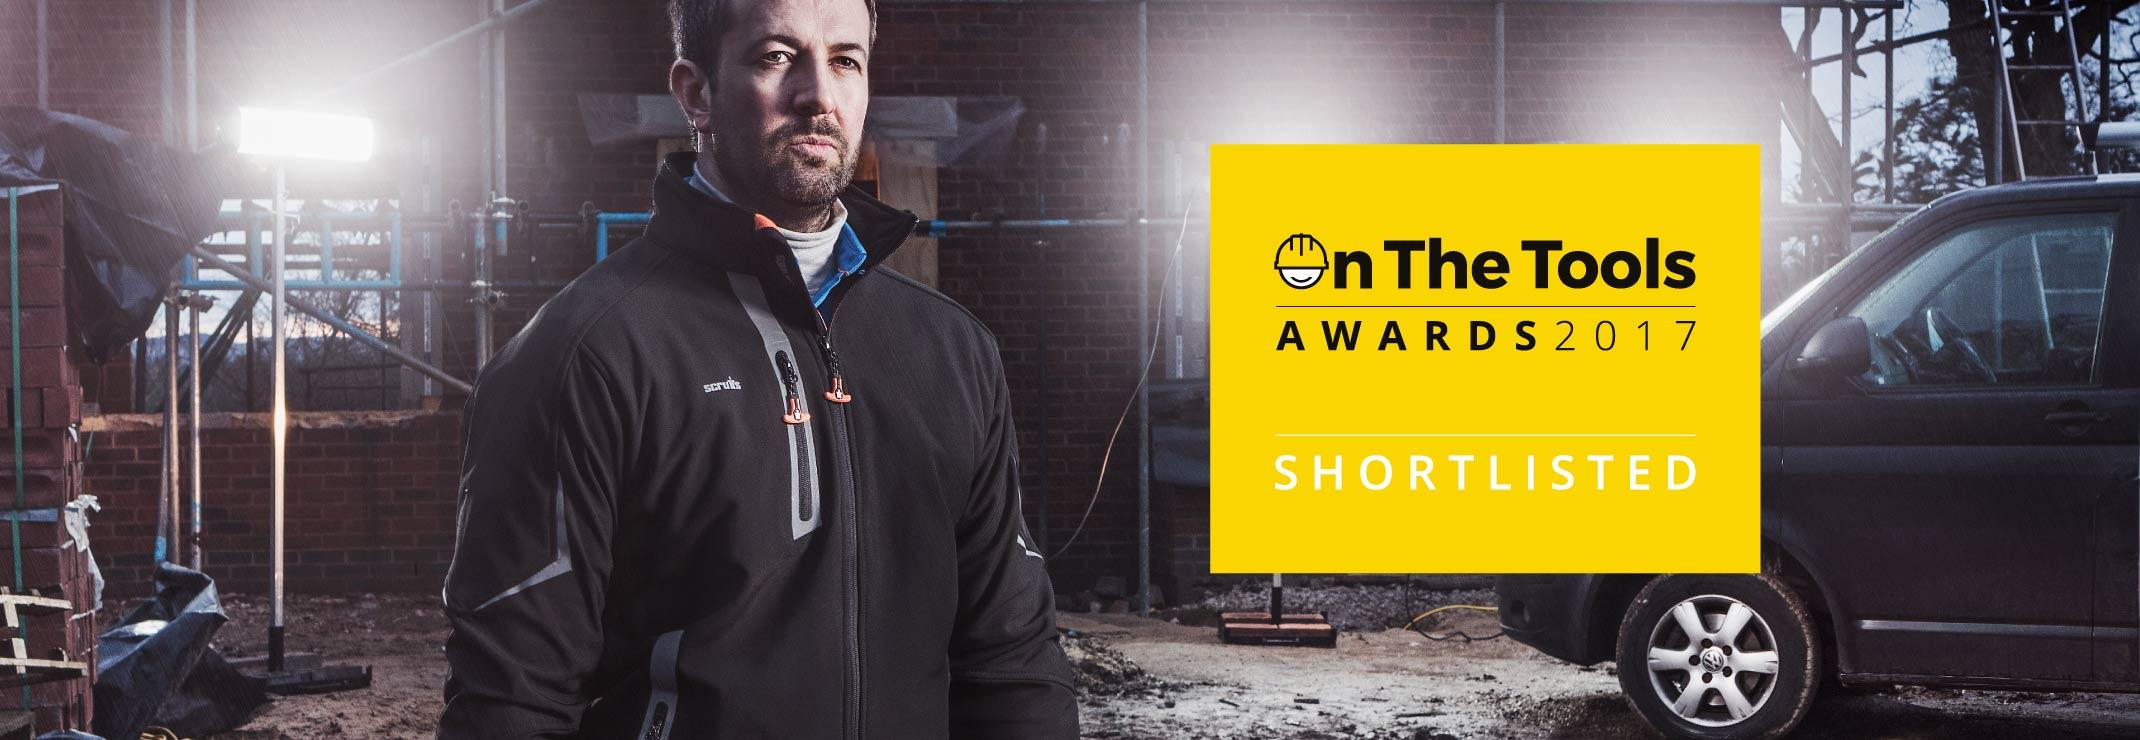 Scruffs On The Tools Awards 2017